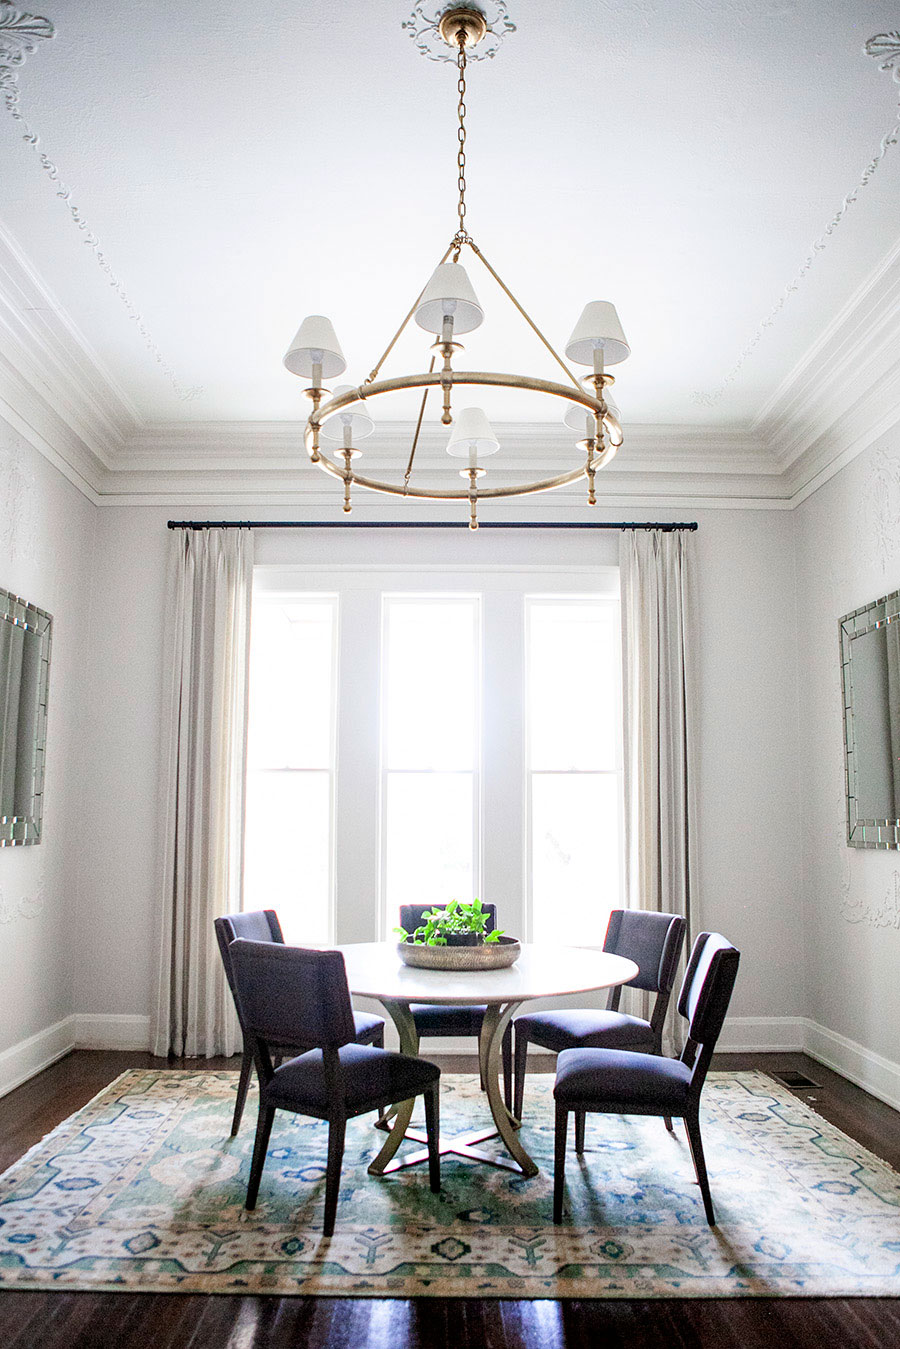 Dining Room with High Ceiling and Round Table